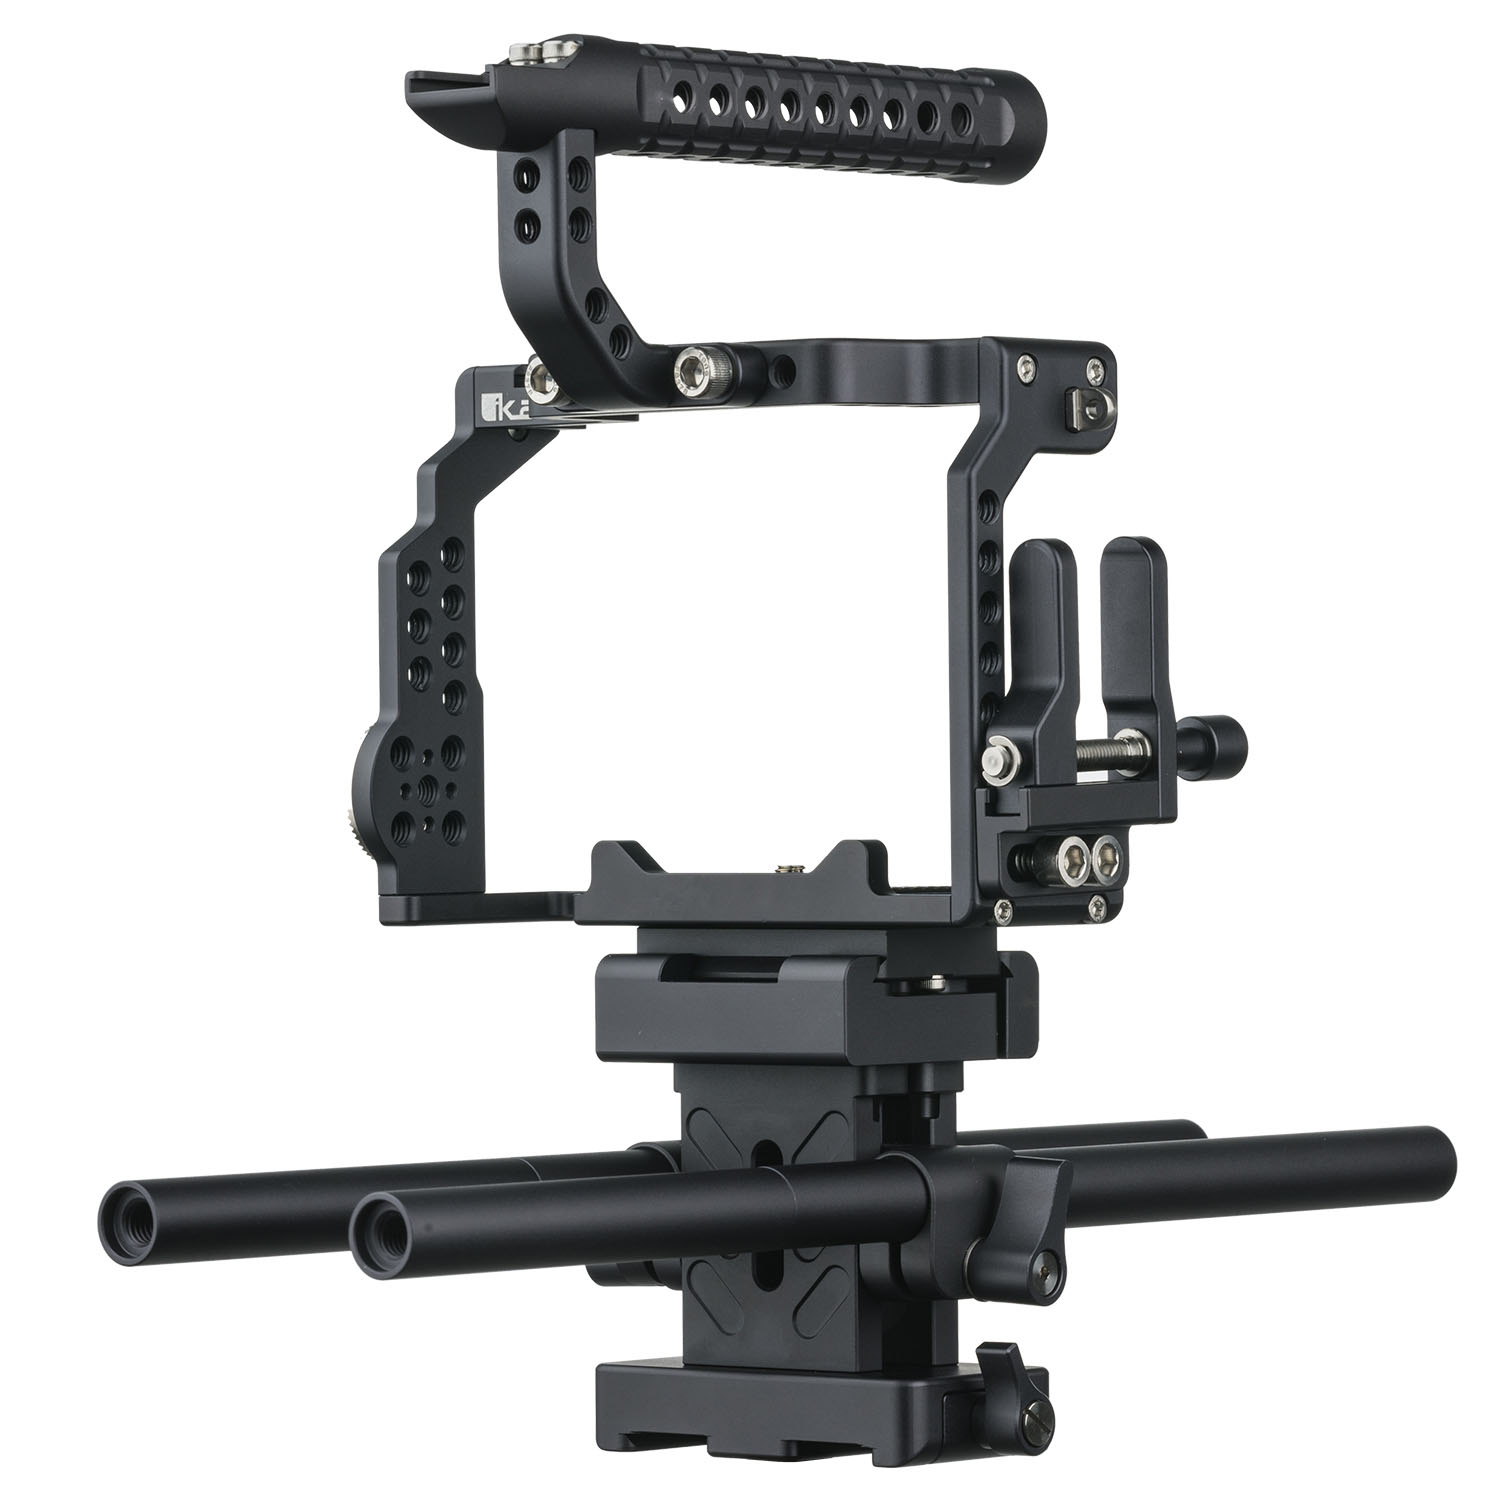 STRATUS Complete Cage for Sony a7 III Series Cameras Includes Top Handle,  Rods, Base, Frame, and Cable Clamp